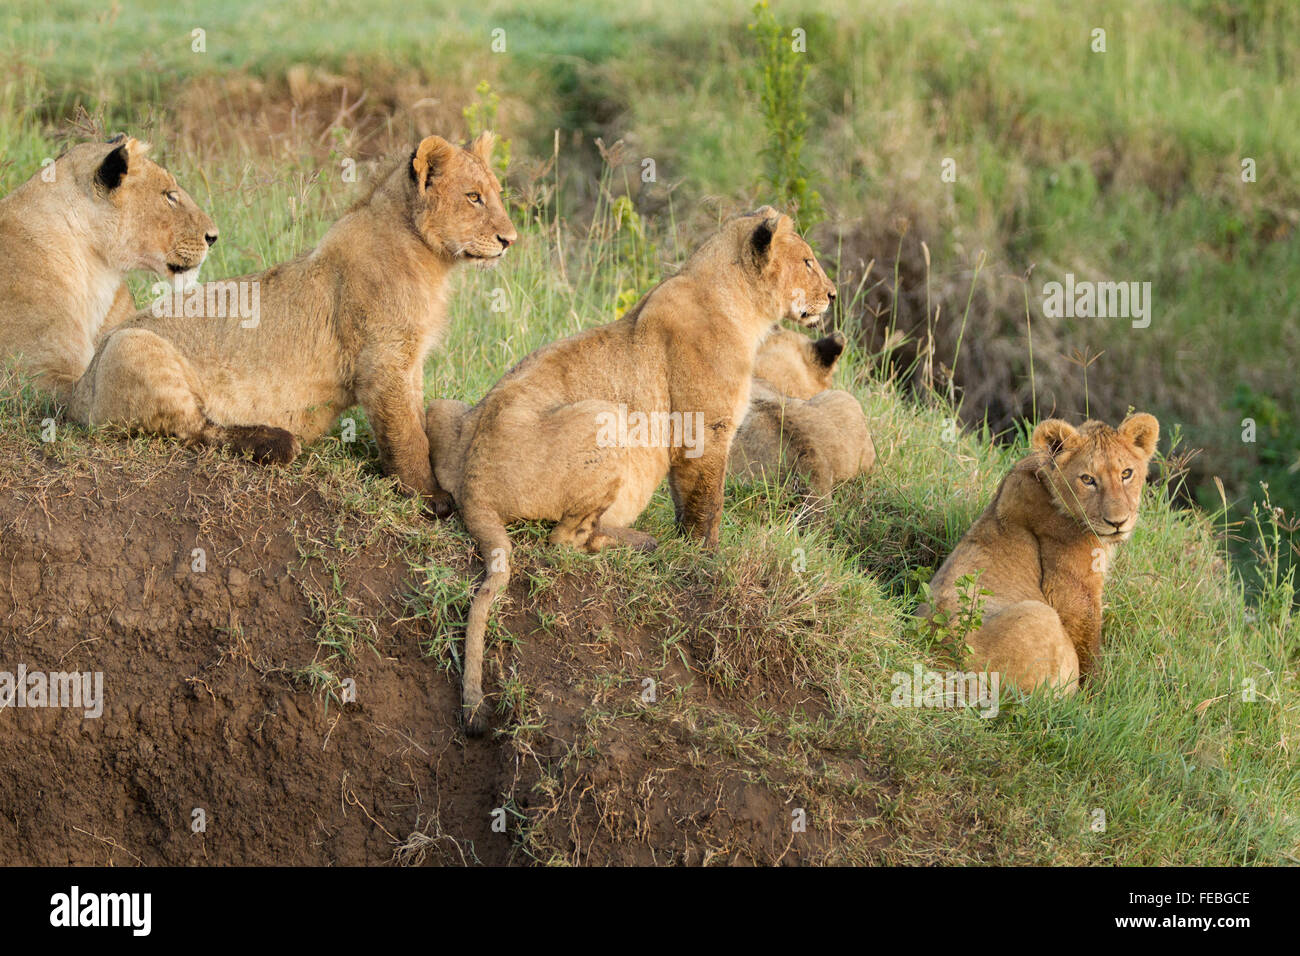 African Lion pride in the Ngorongoro Crater Tanzania - Stock Image